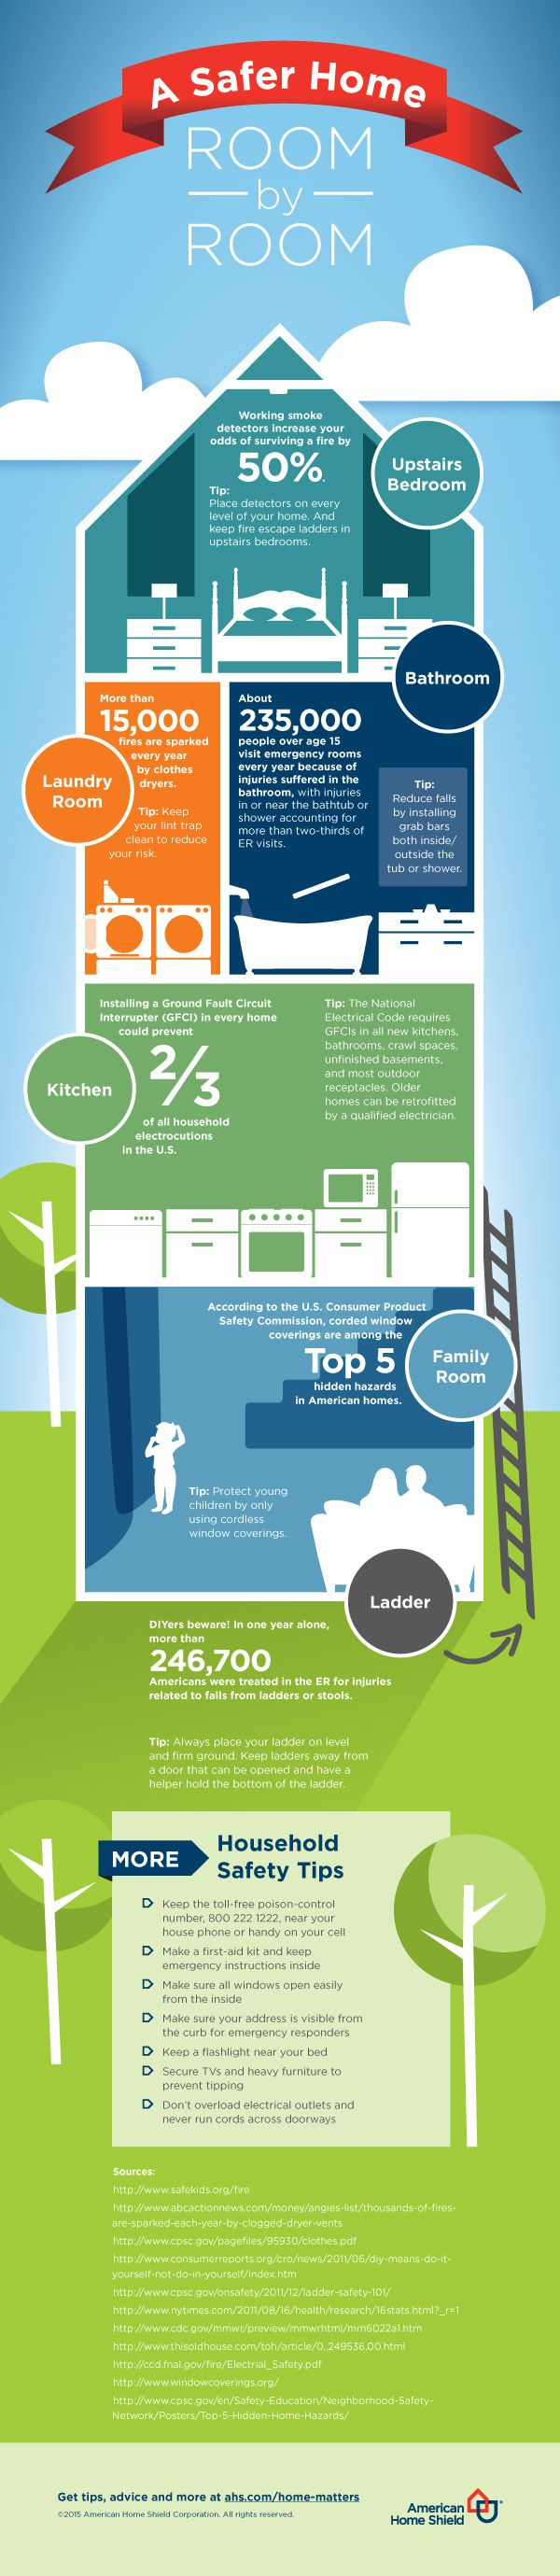 Keeping your home safe, room by room [INFOGRAPHIC]